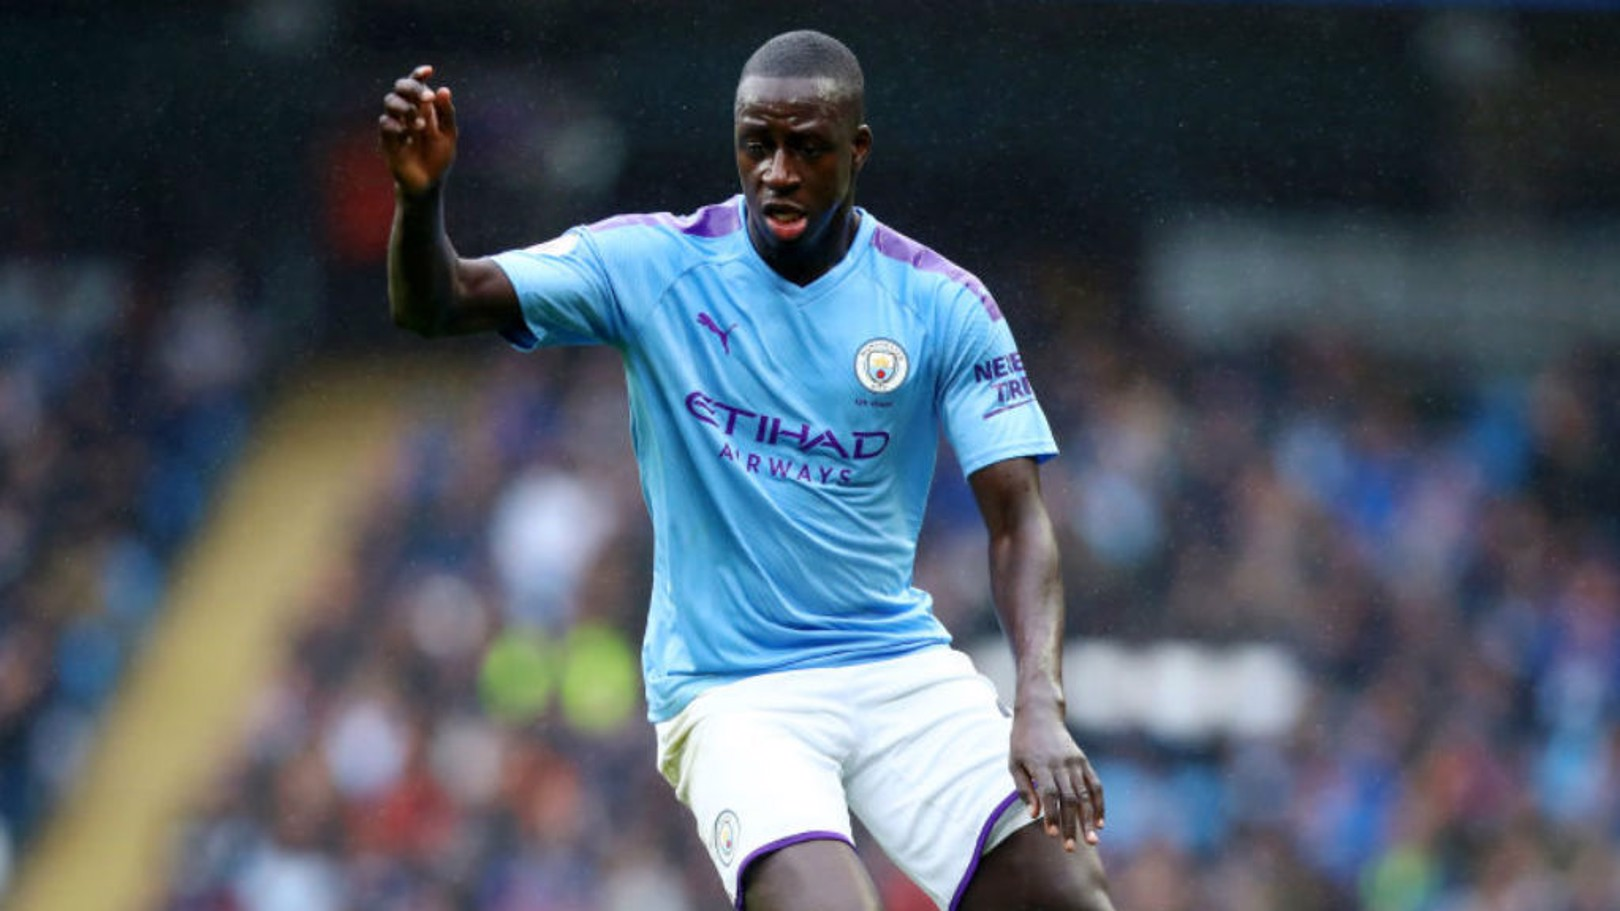 Mendy: The night that made me want to join City